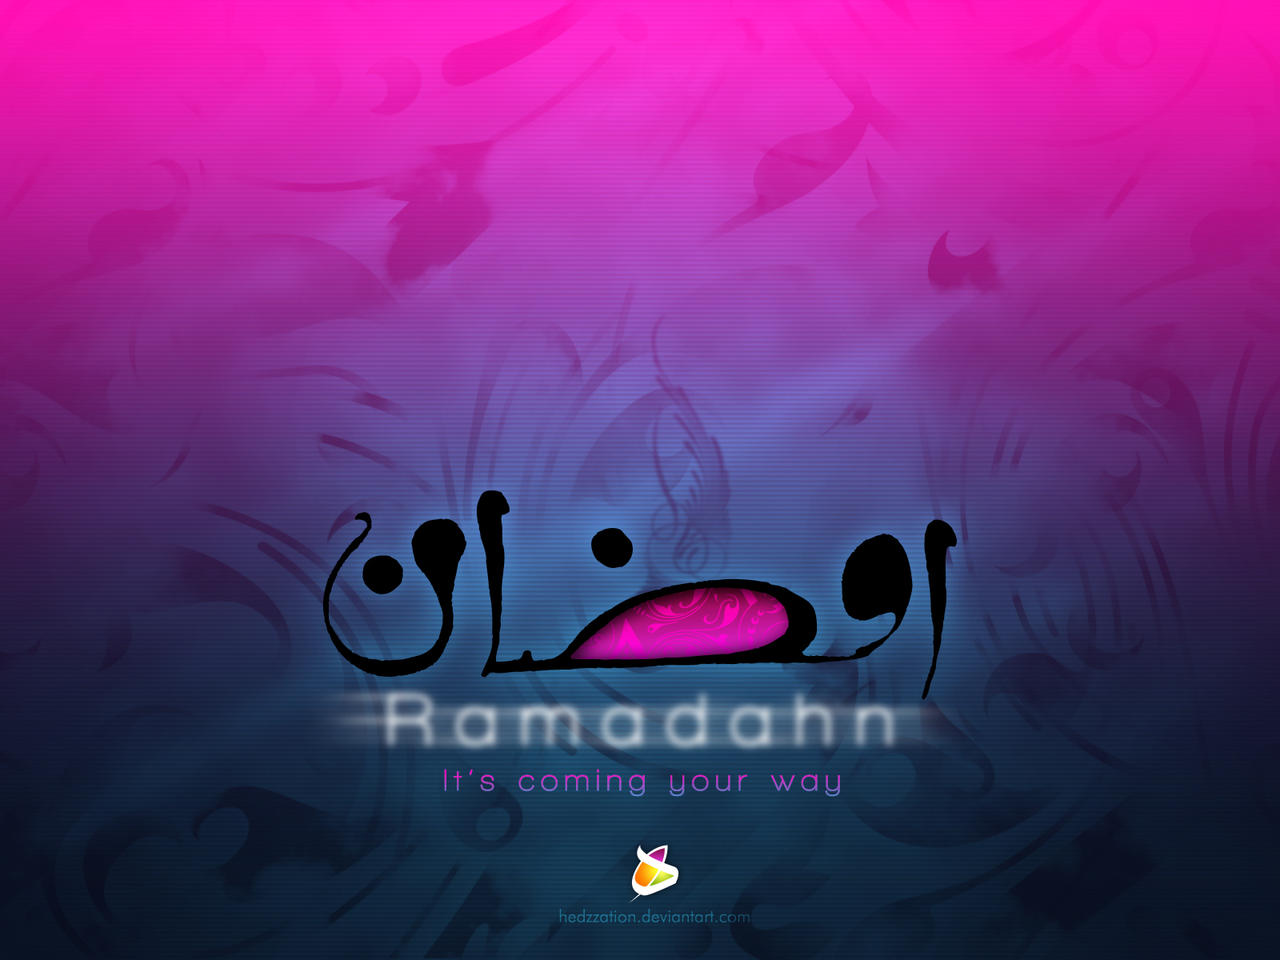 Ramadahn blue magenta by HeDzZaTiOn